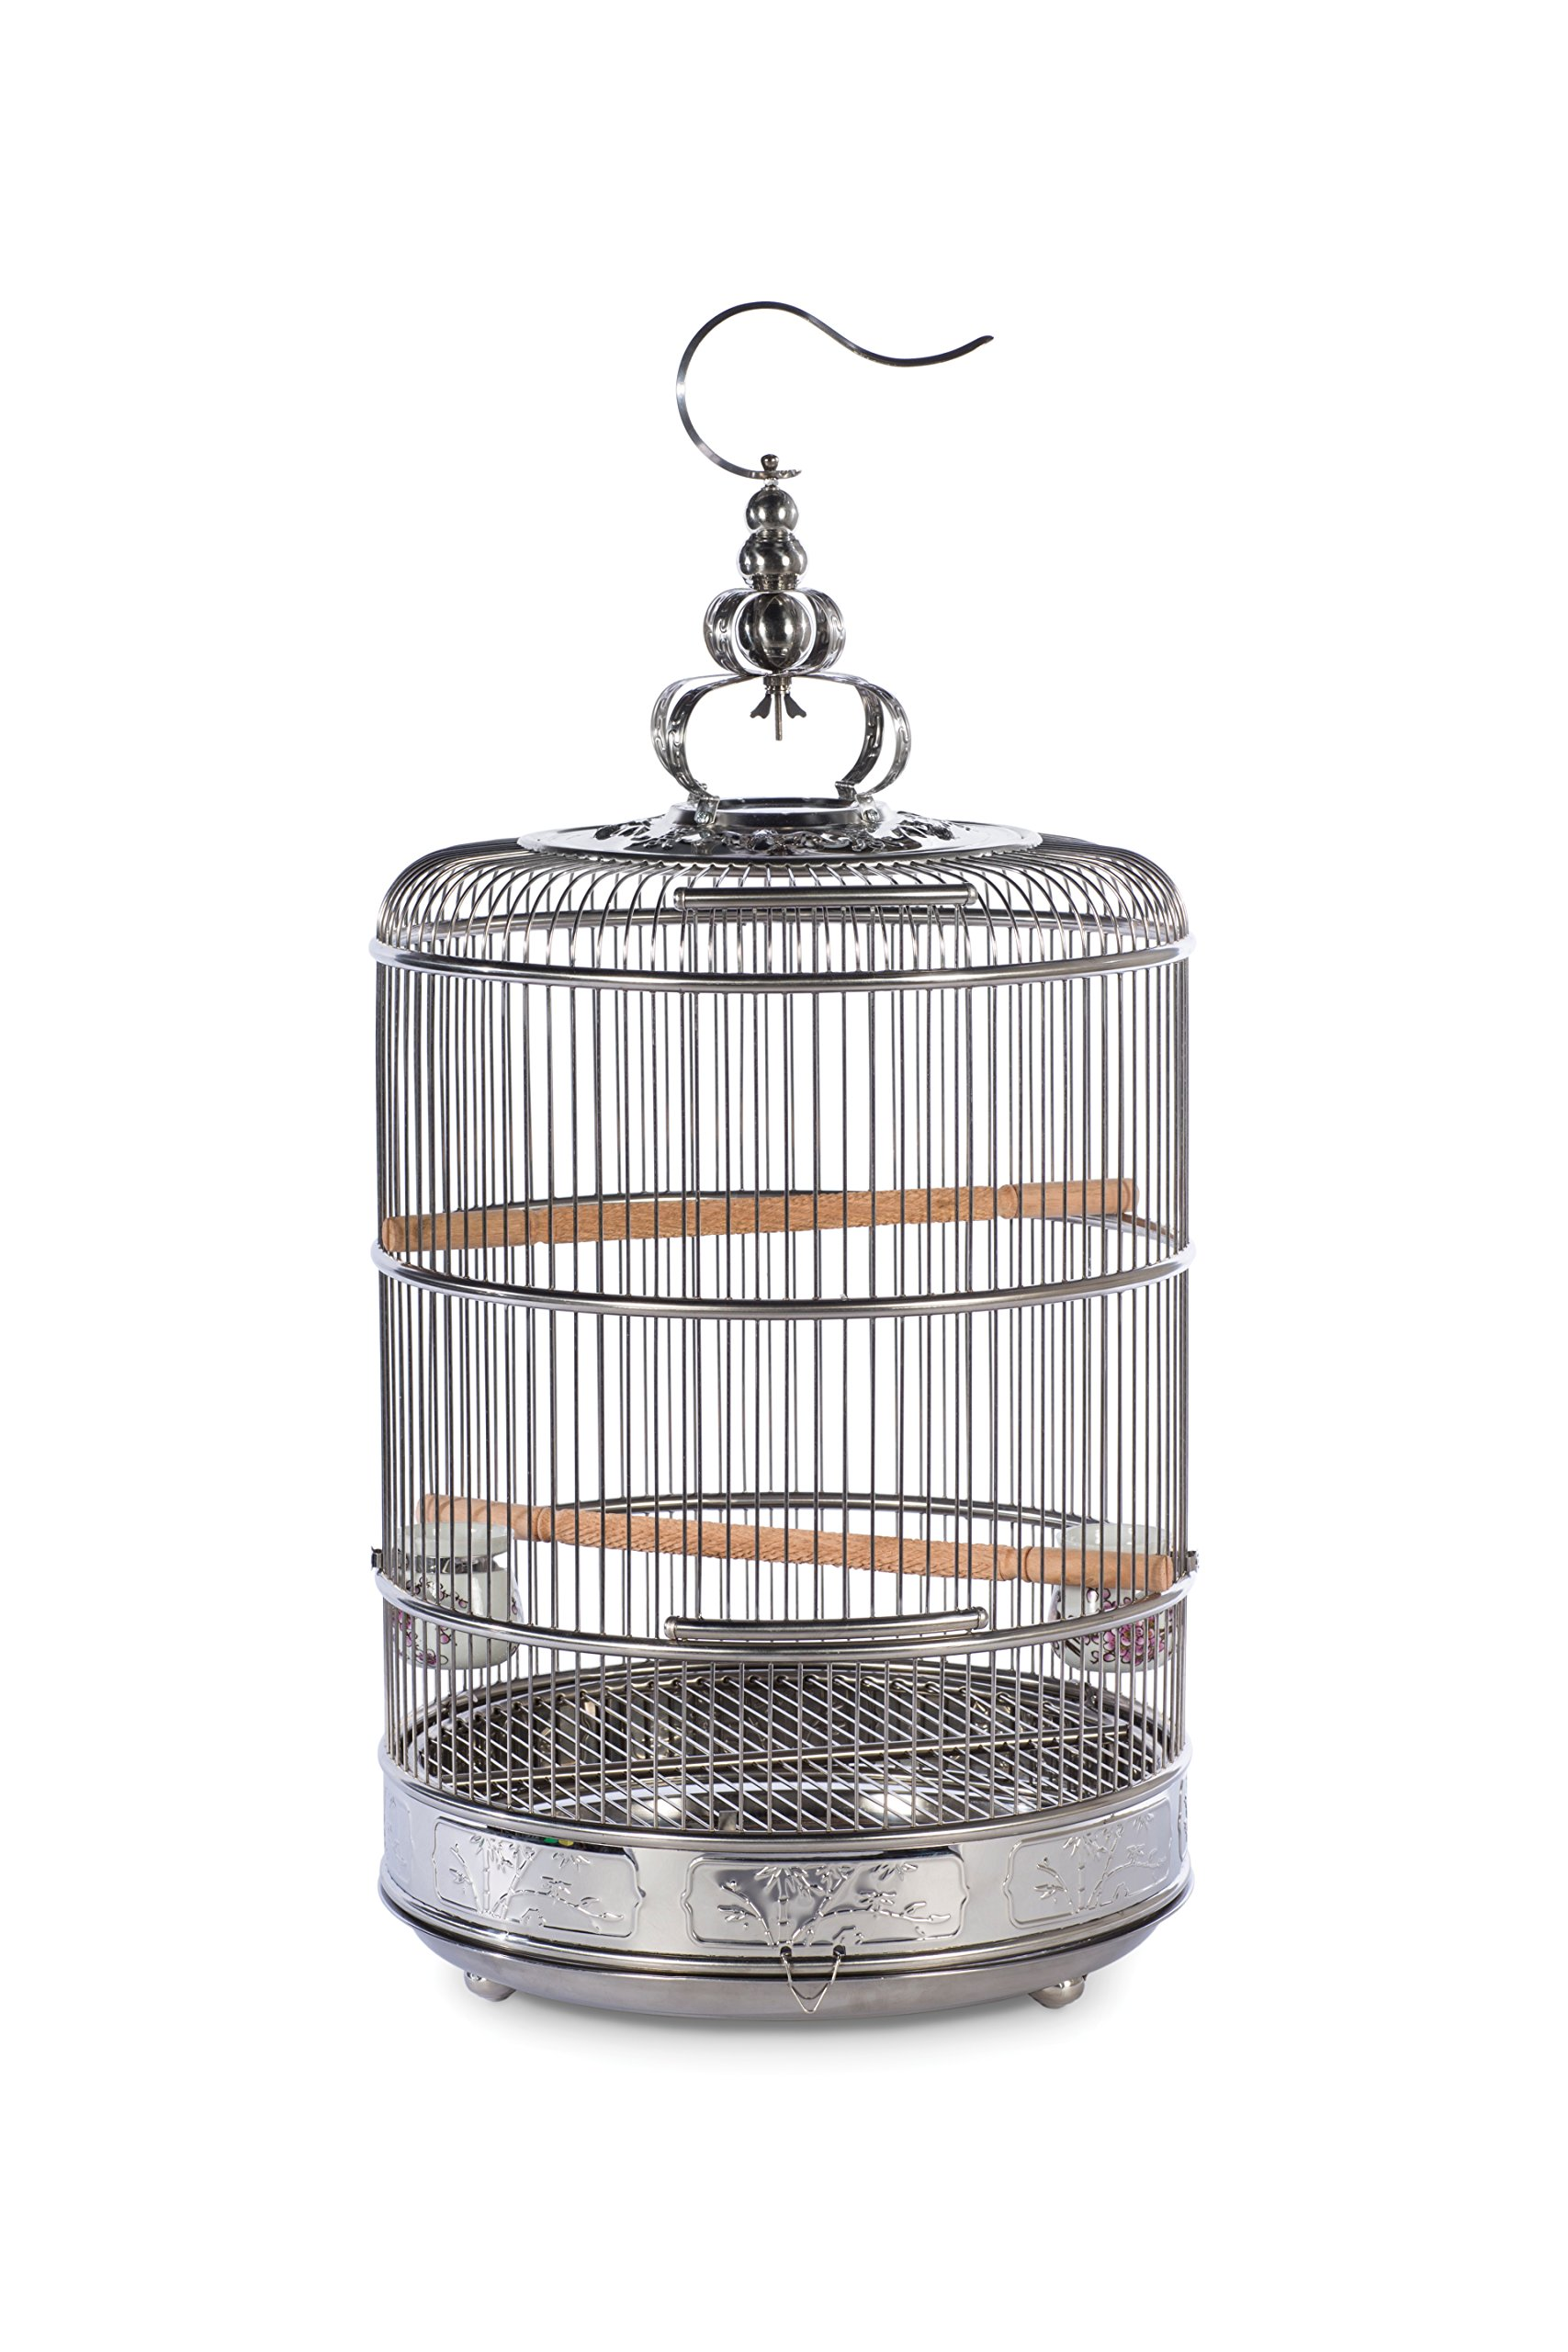 Prevue Pet Products Prevue Pet Products Empress Stainless Steel Bird Cage 151, Stainless Steel by Prevue Pet Products